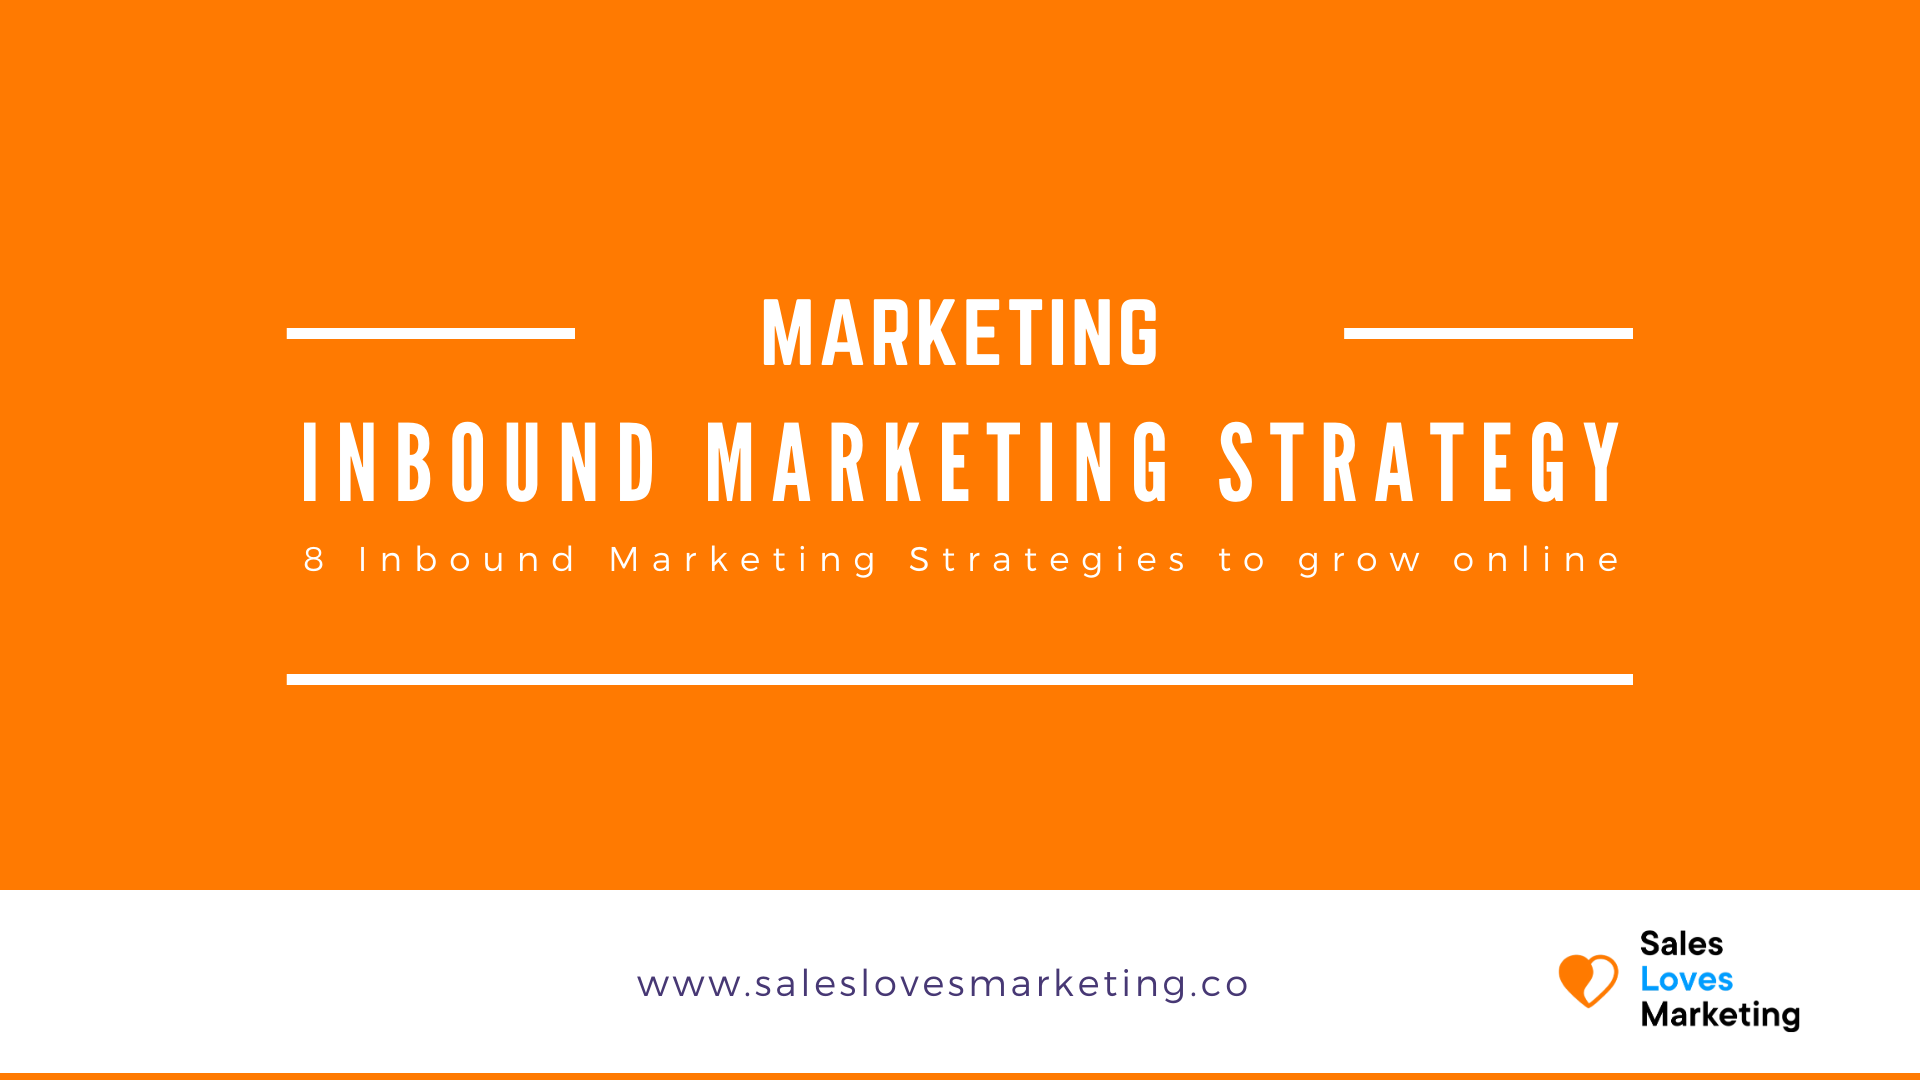 Eight inbound marketing strategies lined out which will help you to grow your online presence as a business